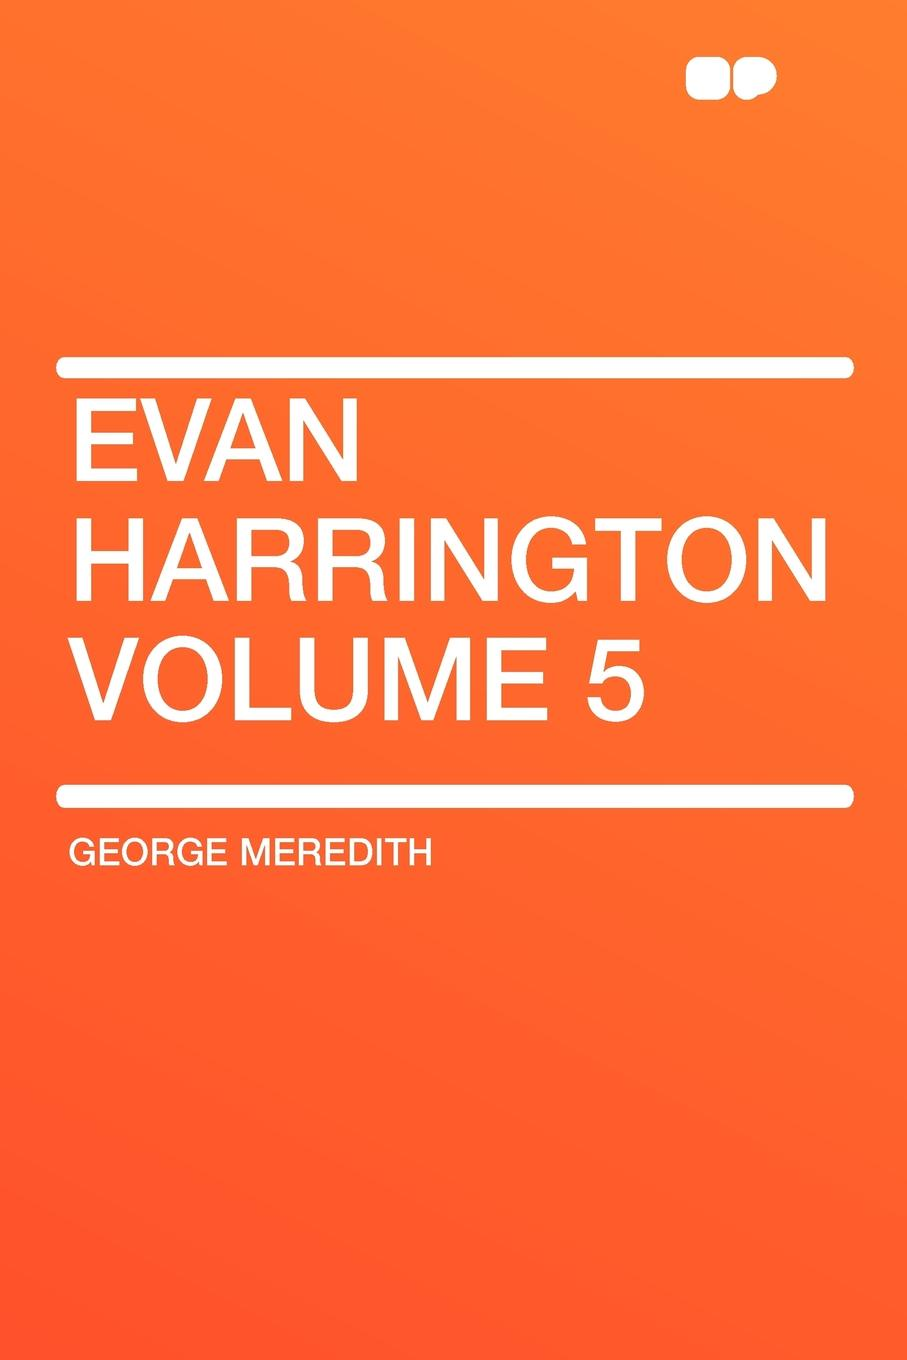 George Meredith Evan Harrington Volume 5